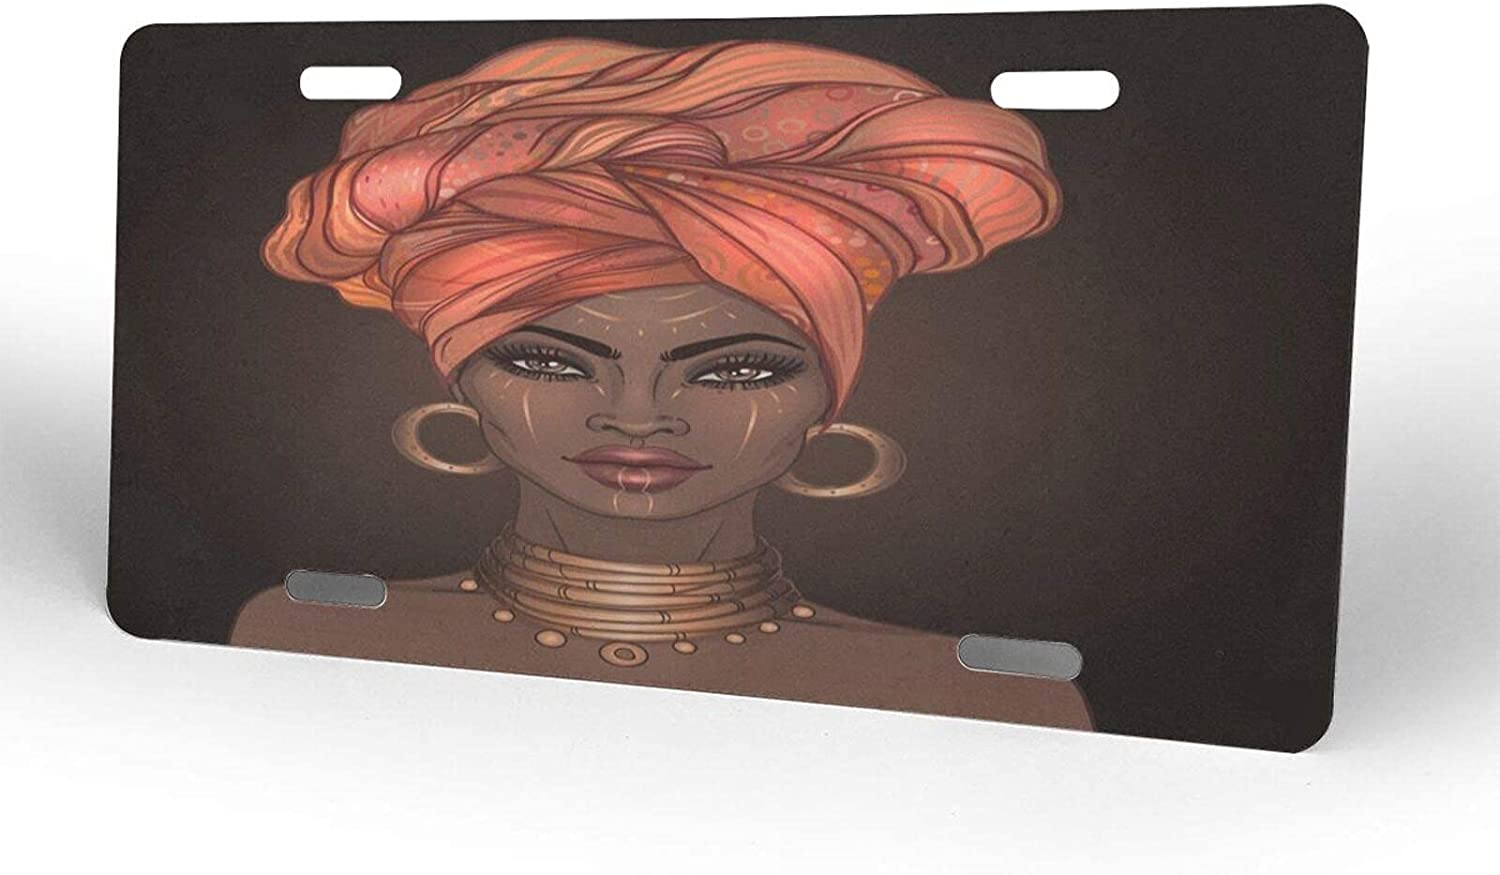 African Afro Women License Plate Pla Superlatite Novelty Cover NEW before selling Metal